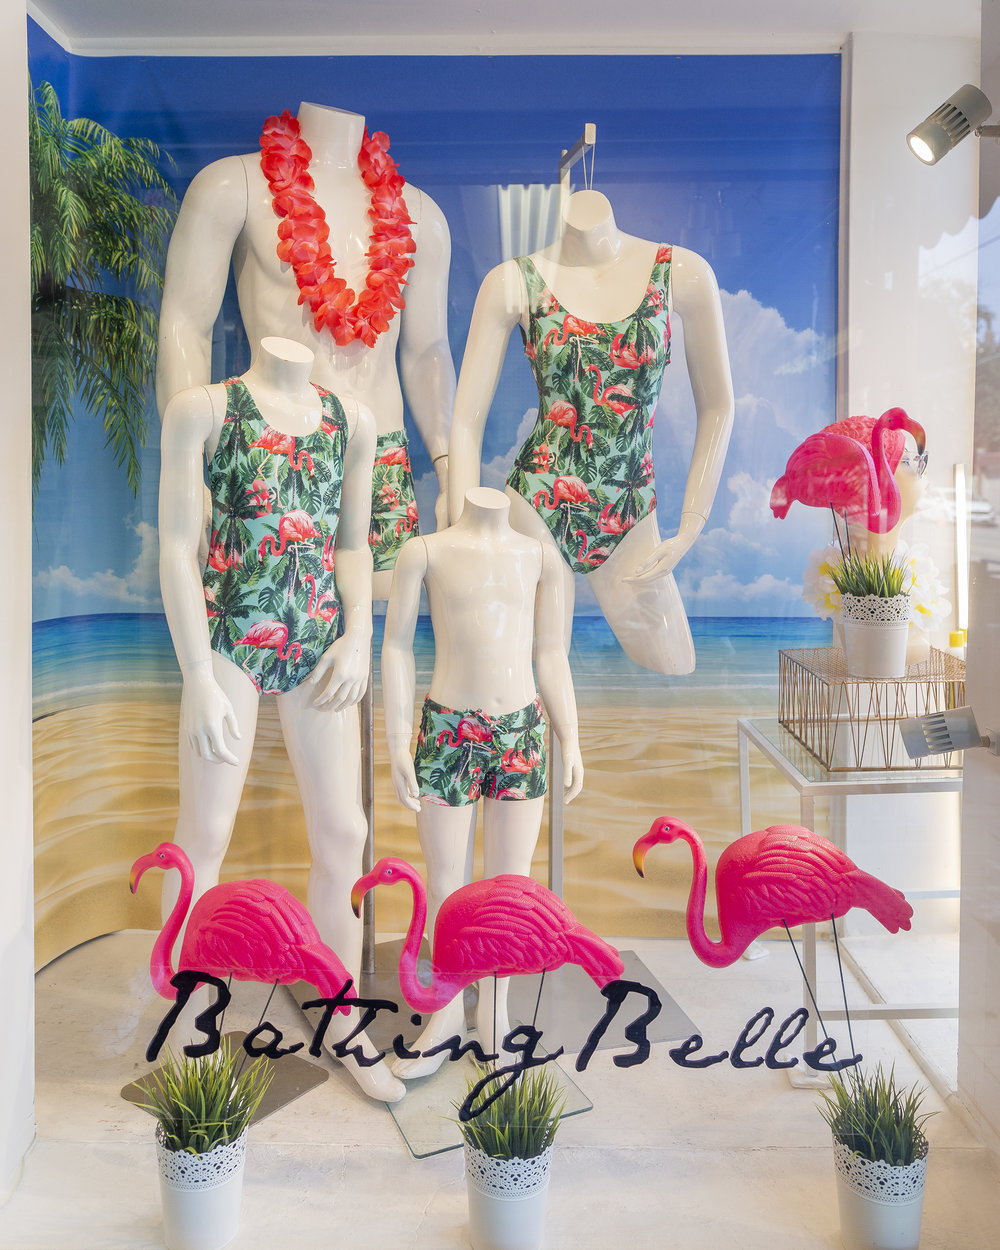 Bathing Belle Swimwear is located at 355 Roncesvalles Ave, Toronto